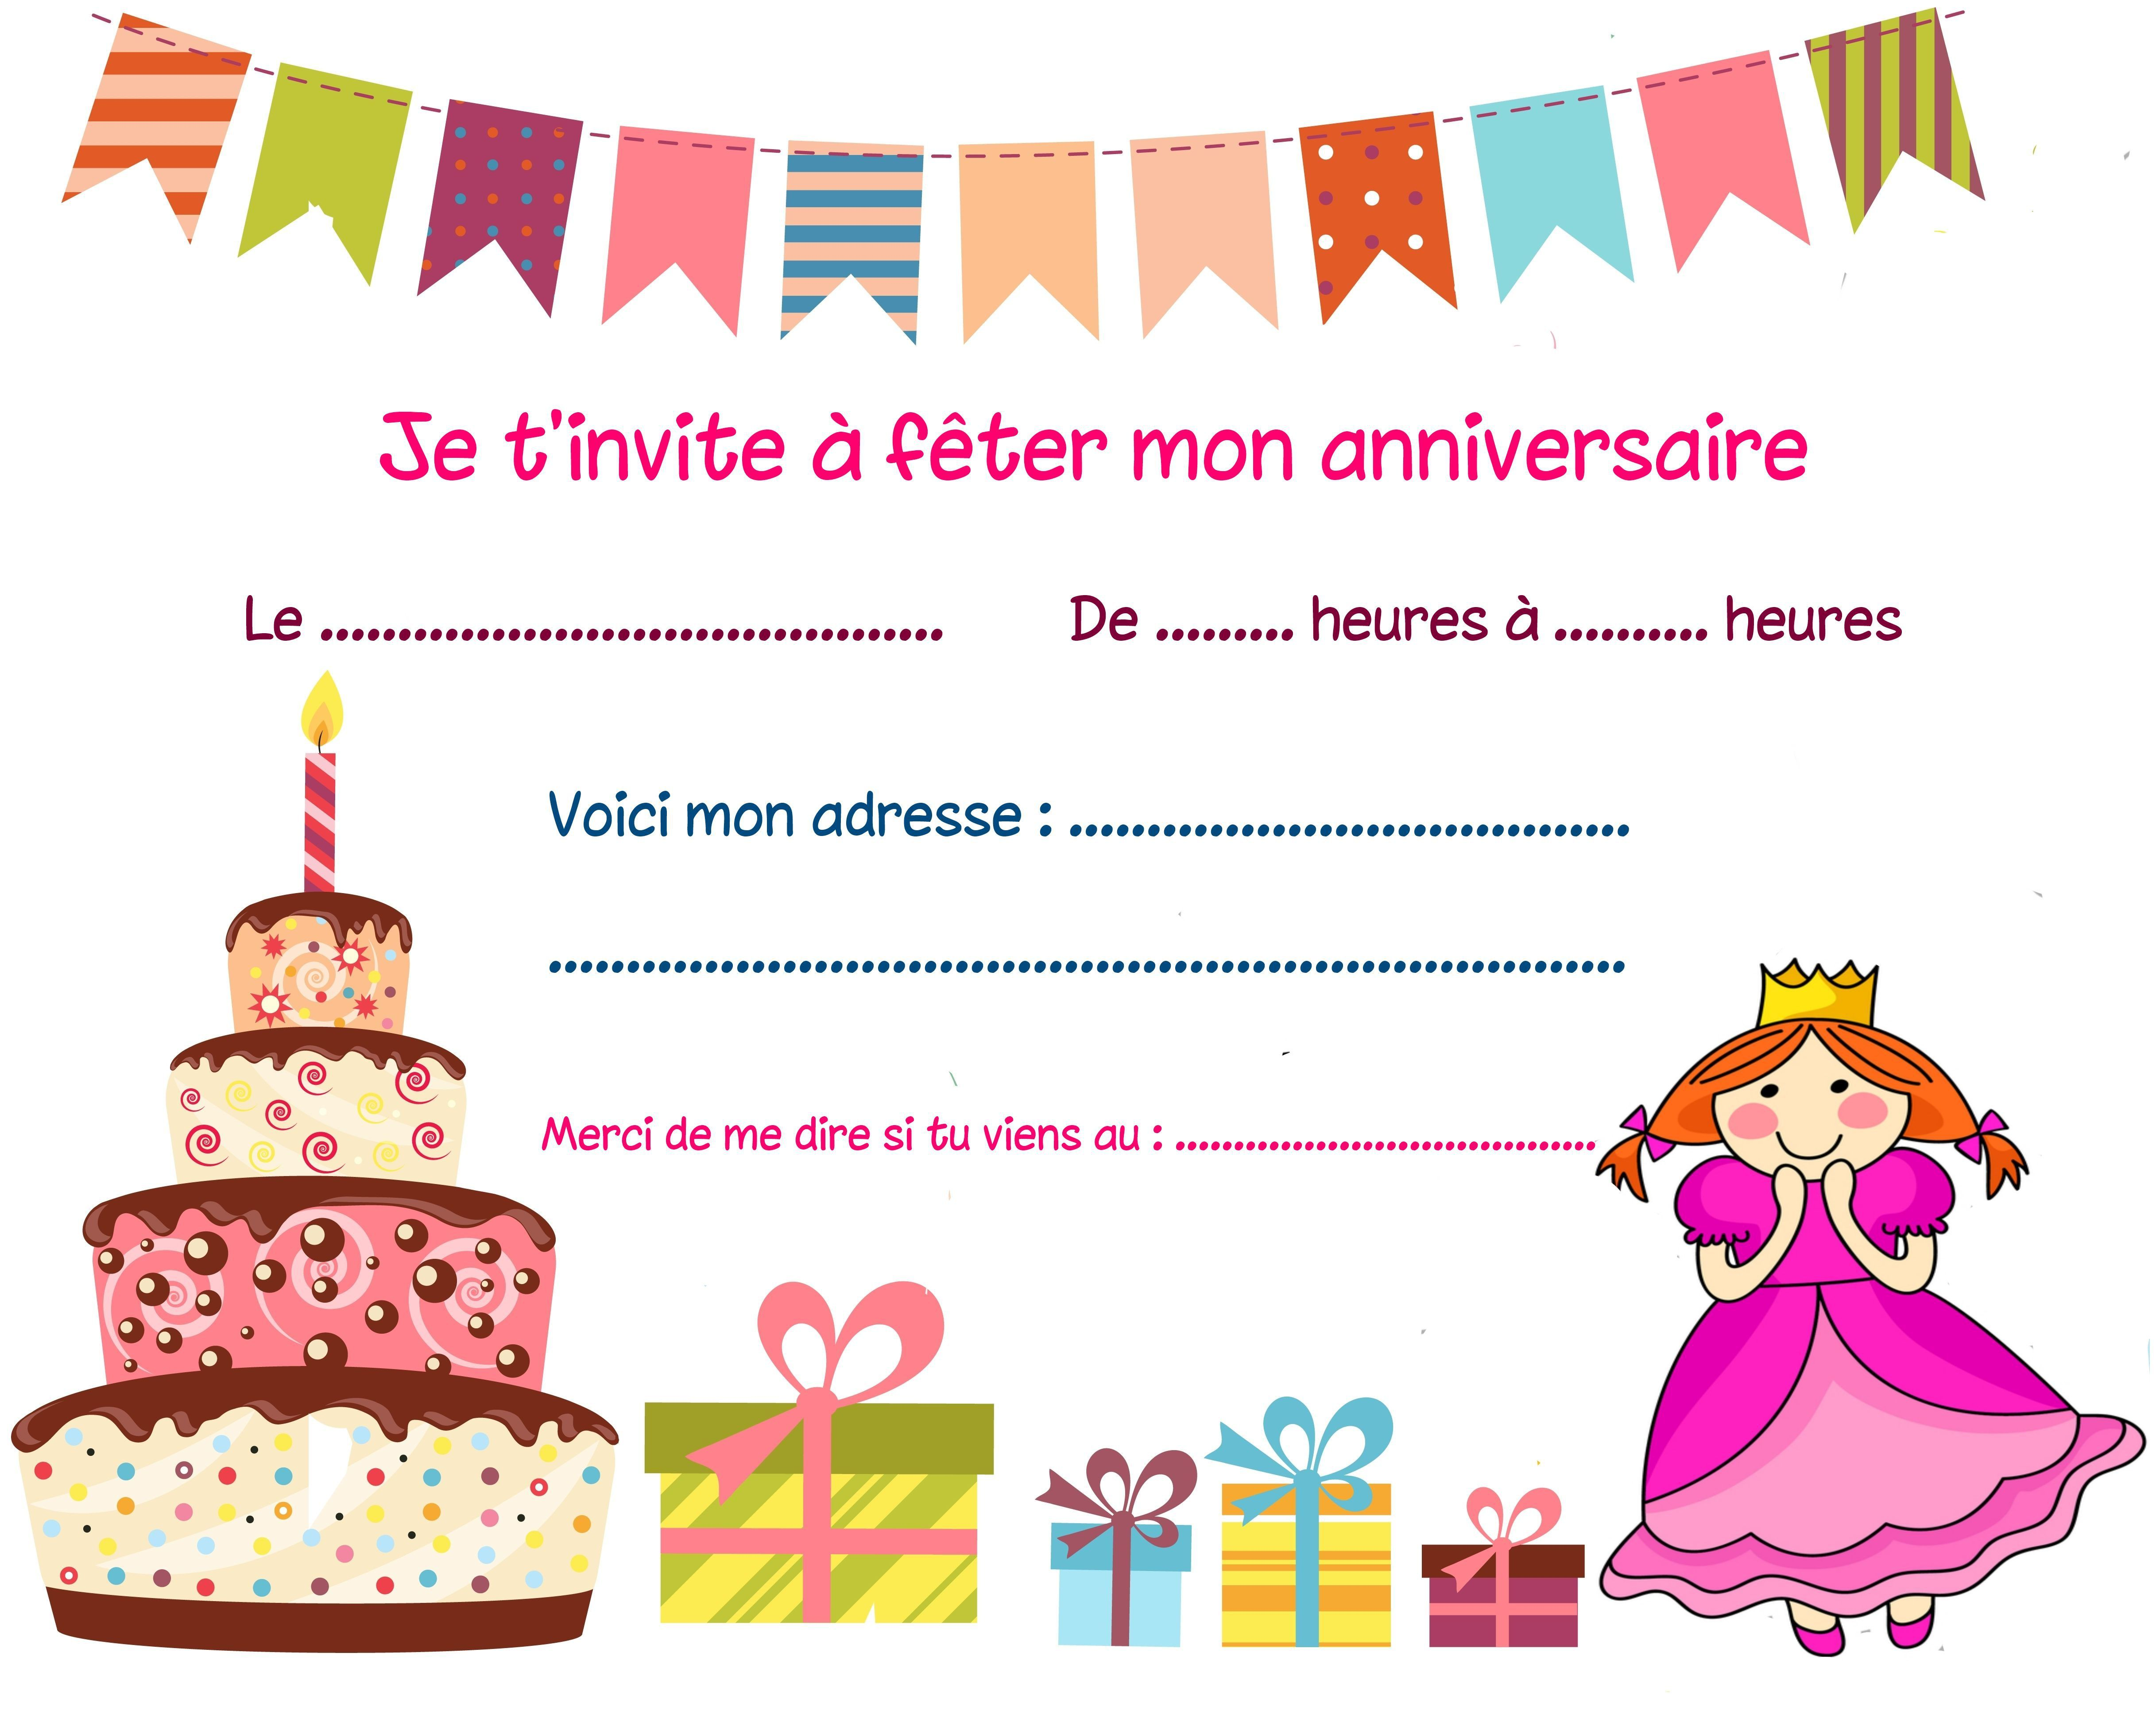 carte invitation anniversaire carte d invitation anniversaire carte anniversaire carte. Black Bedroom Furniture Sets. Home Design Ideas